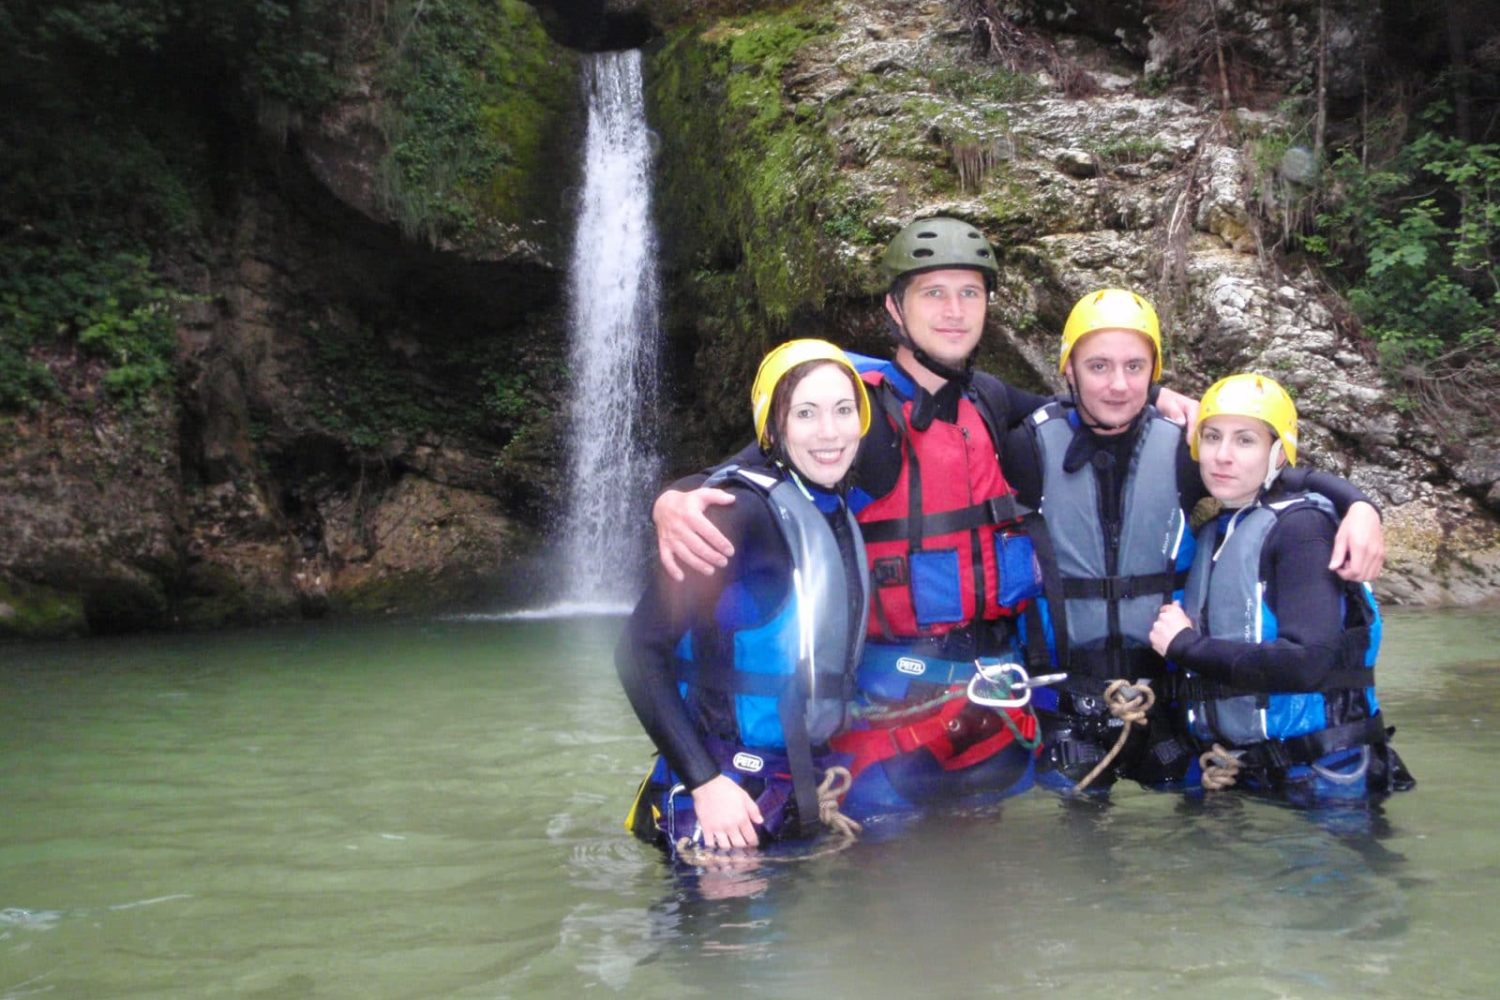 Canyoning activity in Bled